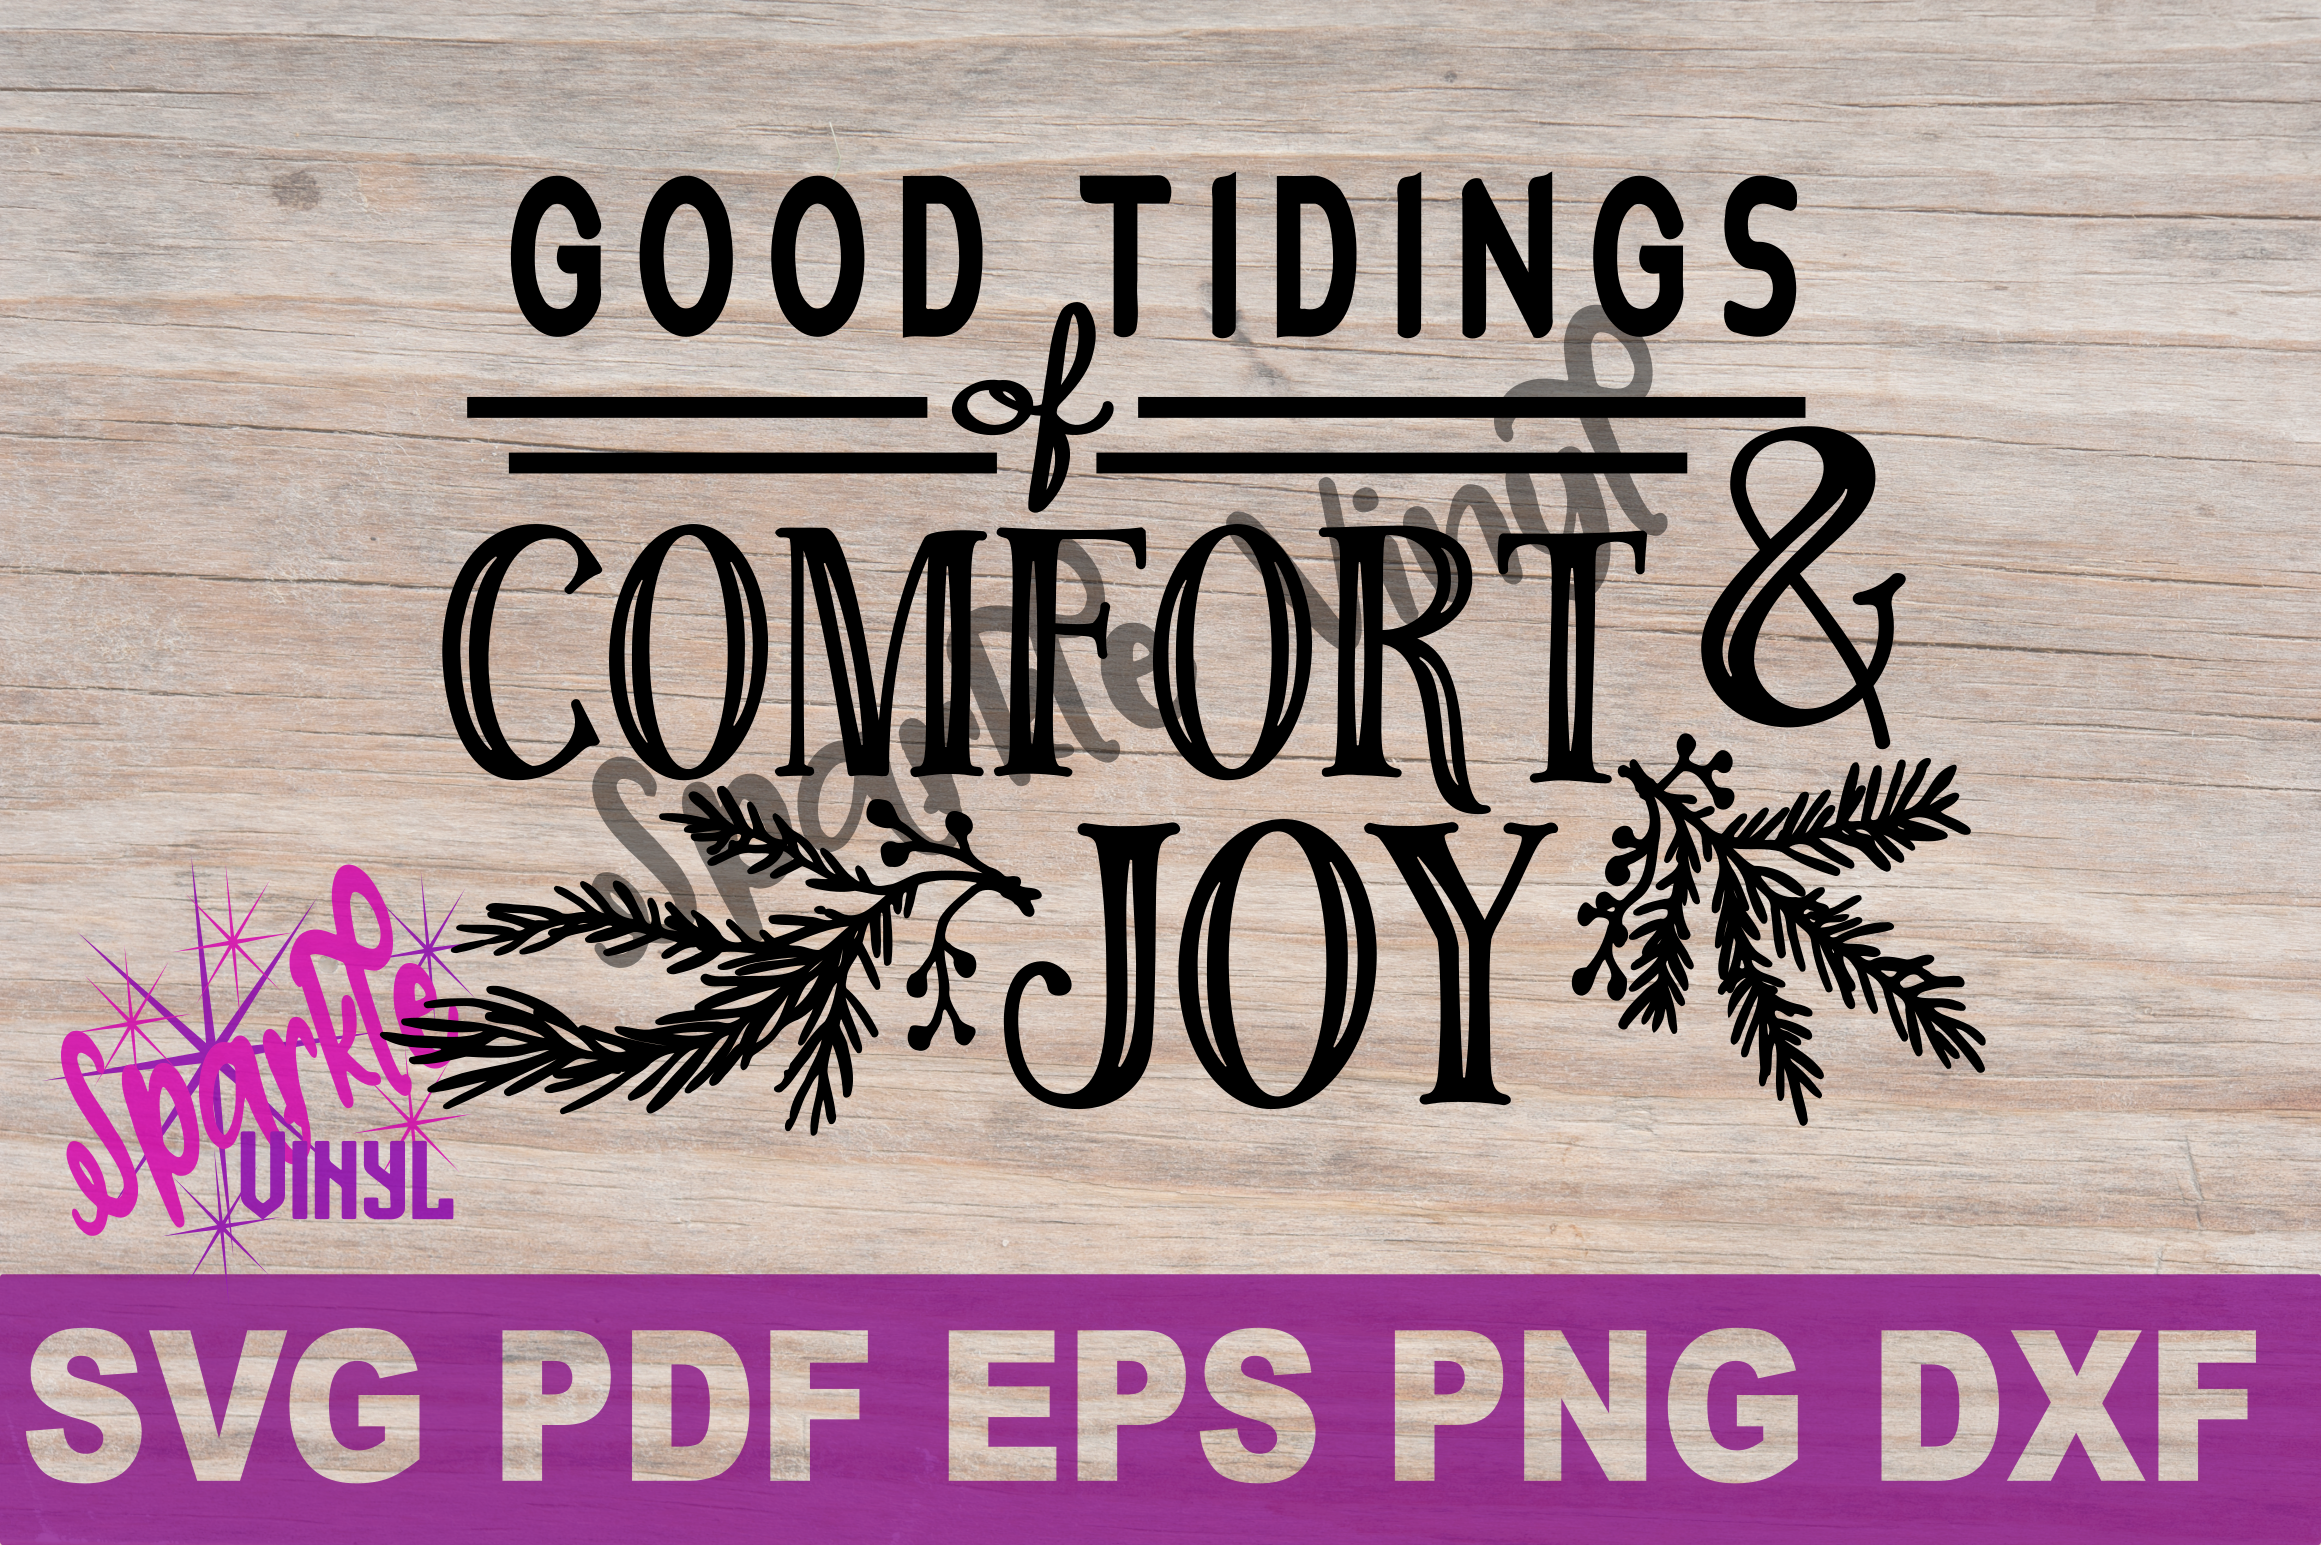 SVG Christmas Comfort and Joy DIY Sign stencil farmhouse example image 5